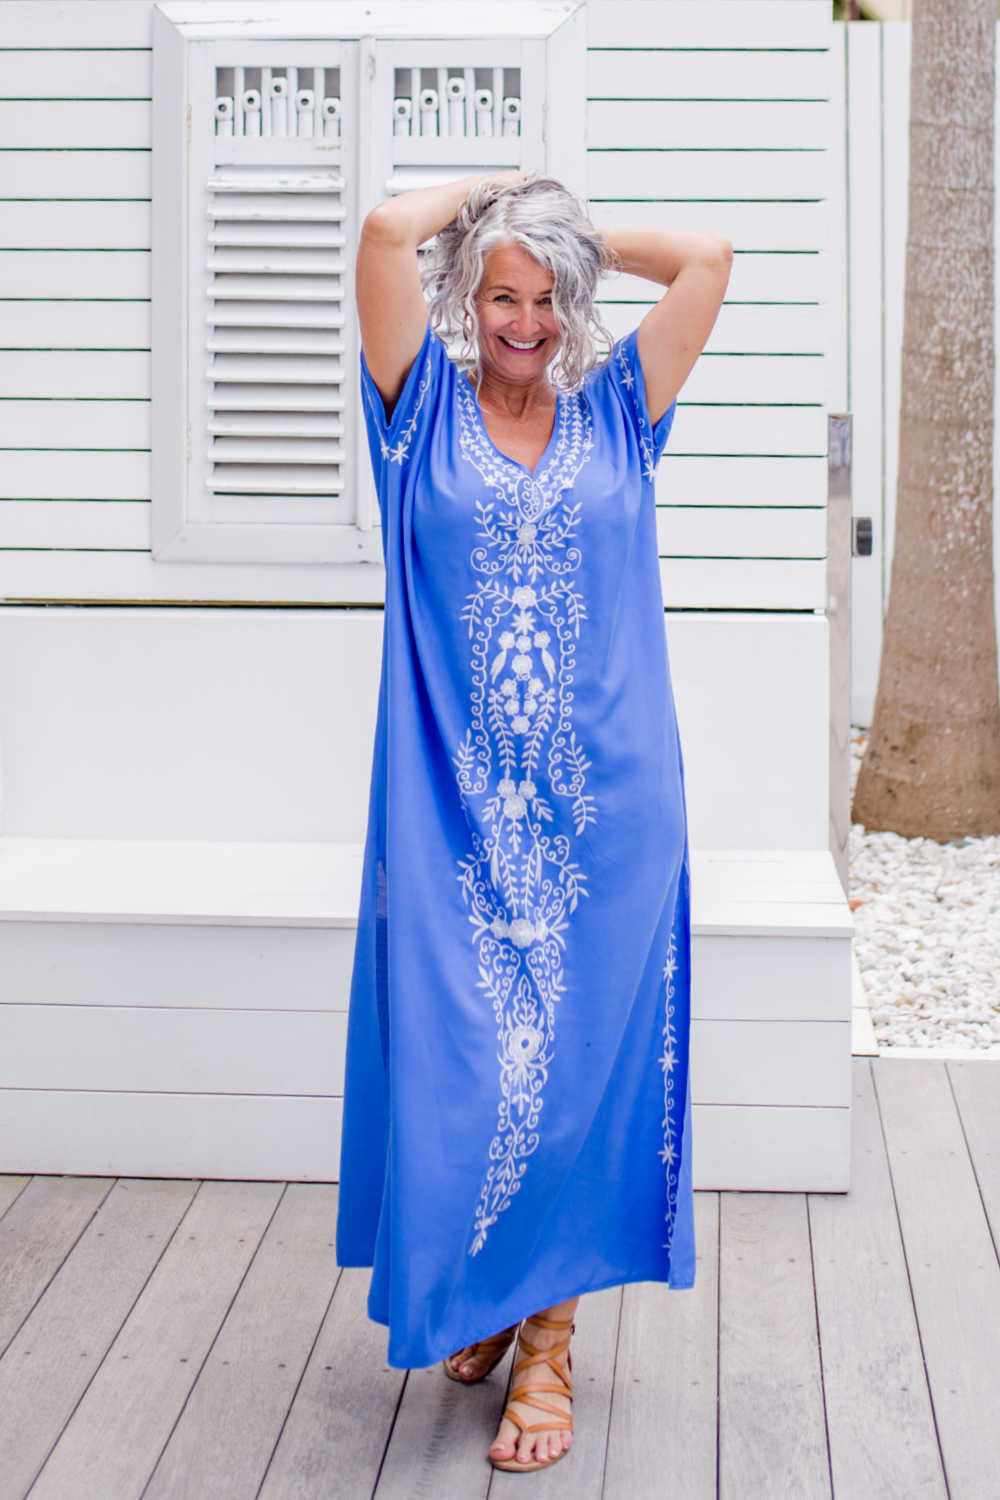 long-summer-dress-blue-white-embroidery